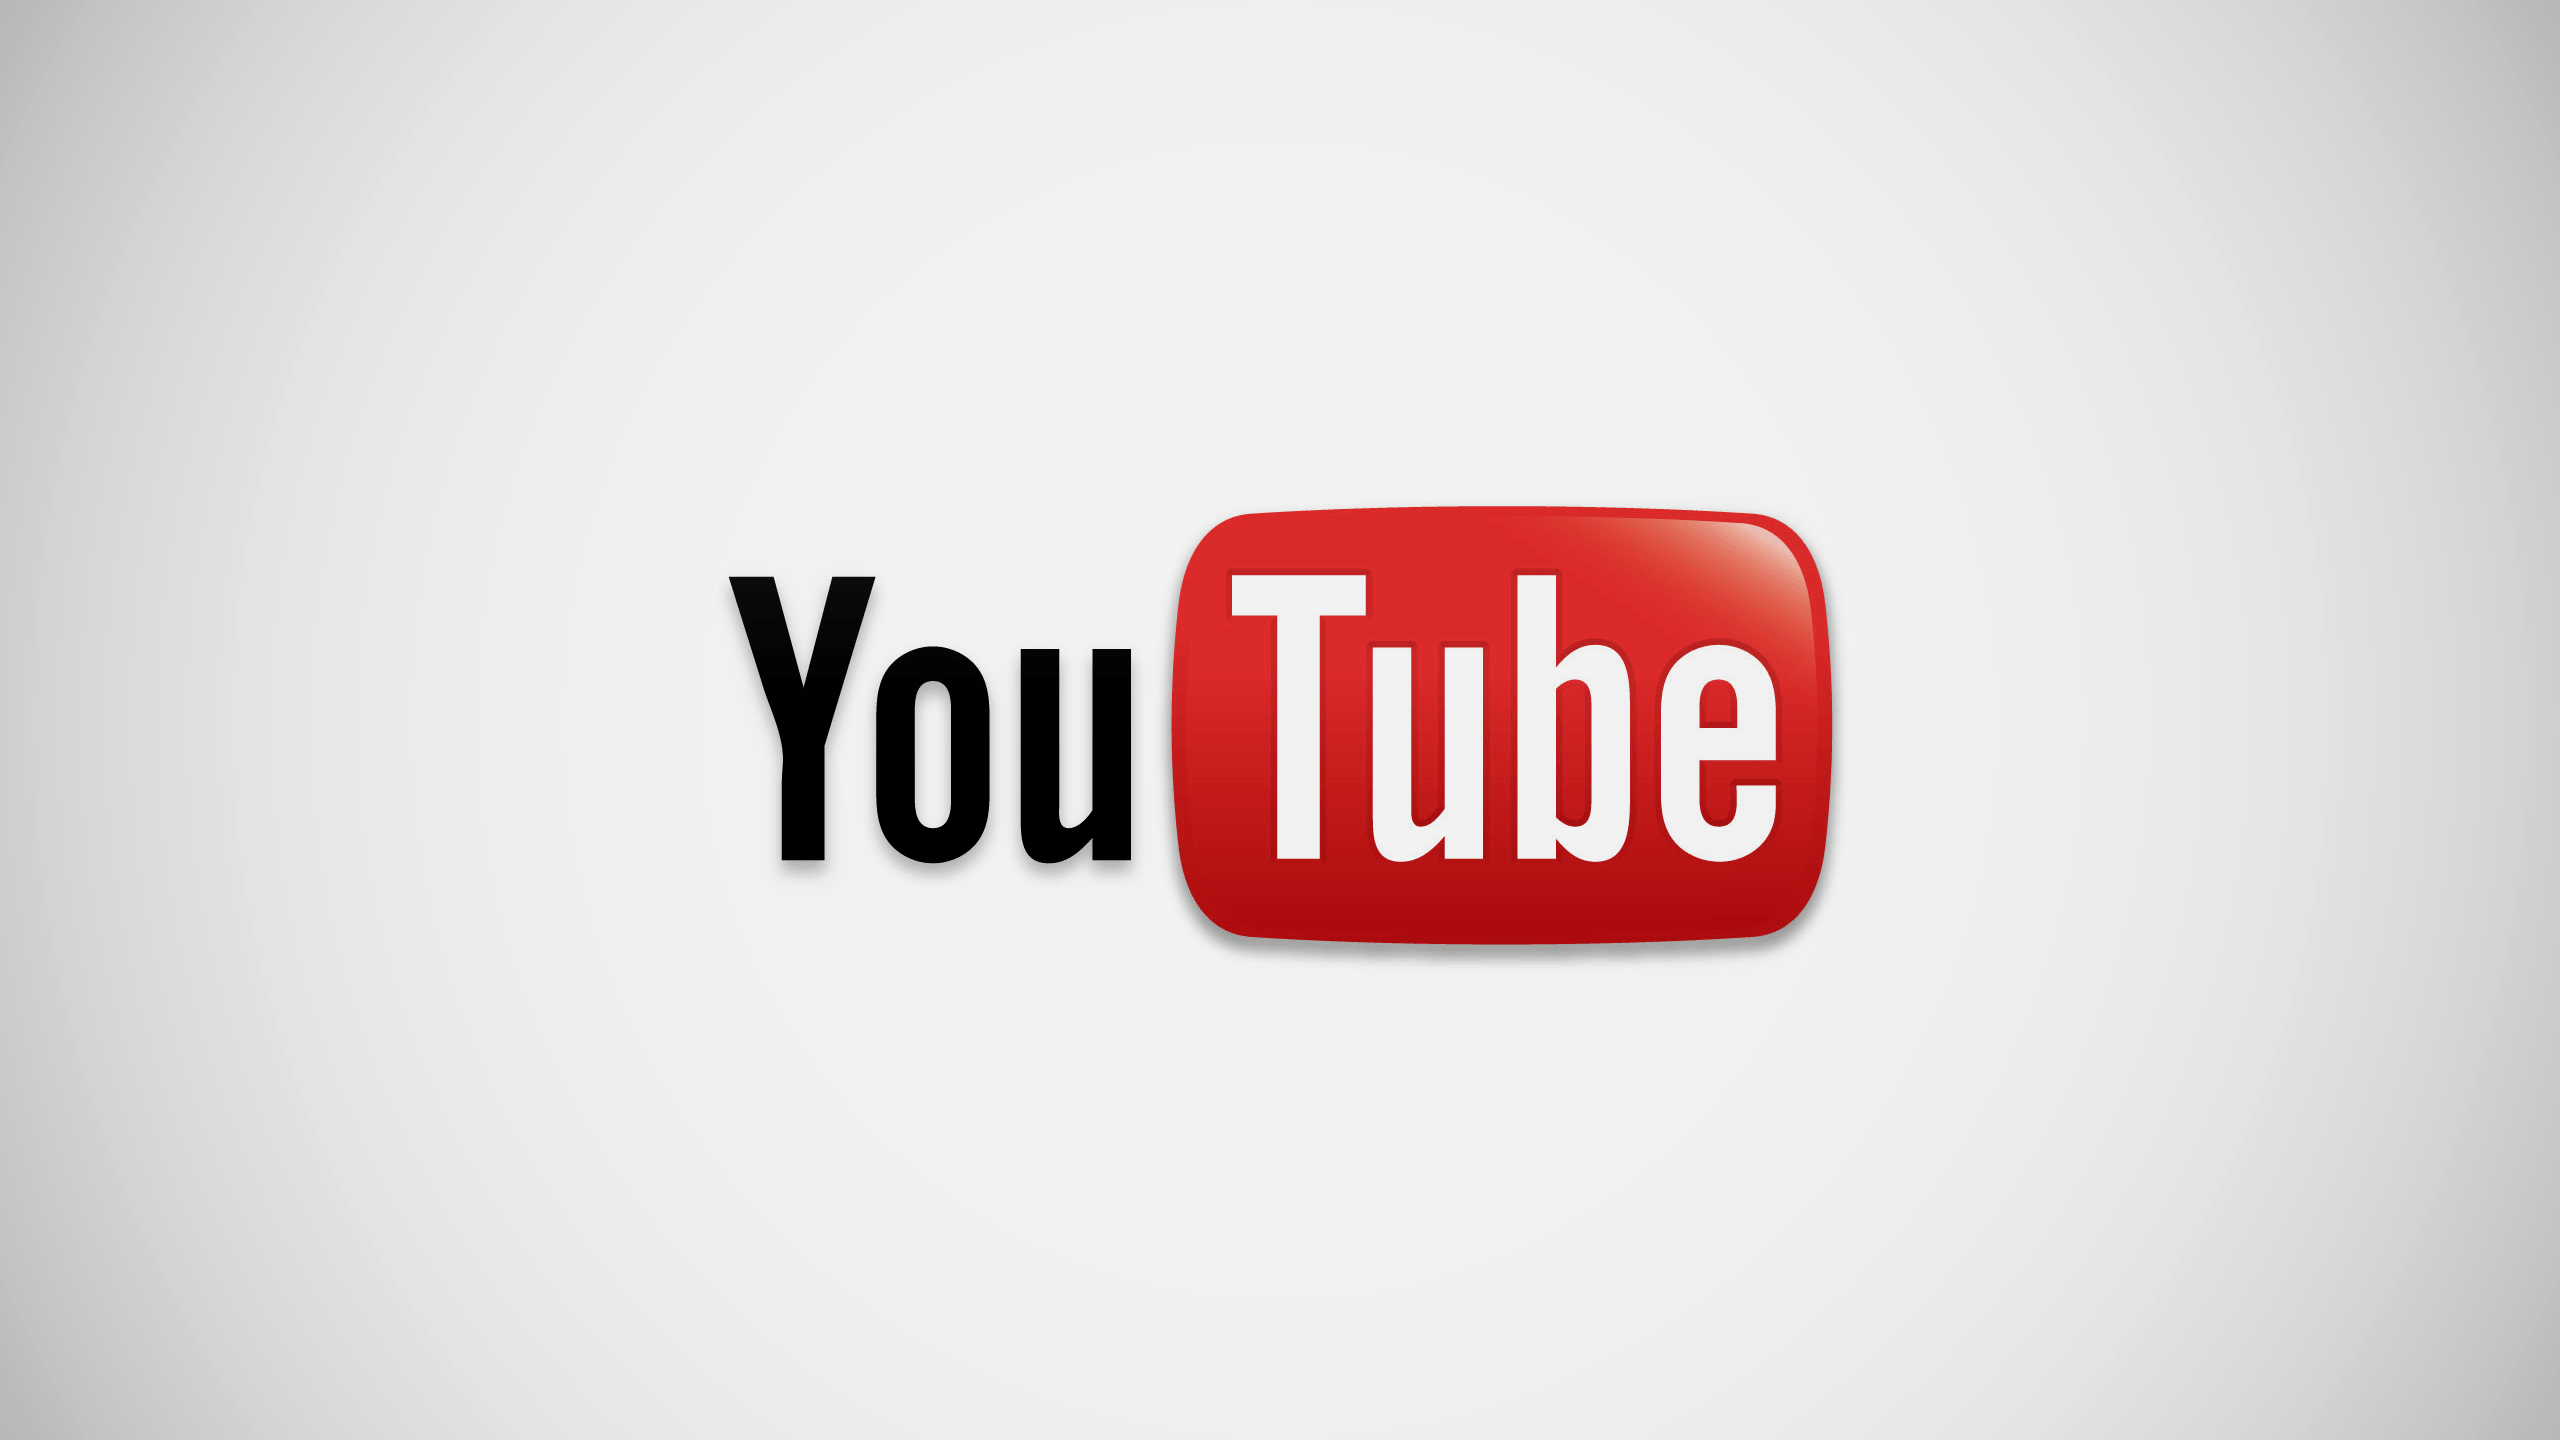 Youtube Logo Wallpapers Top Free Youtube Logo Backgrounds Wallpaperaccess